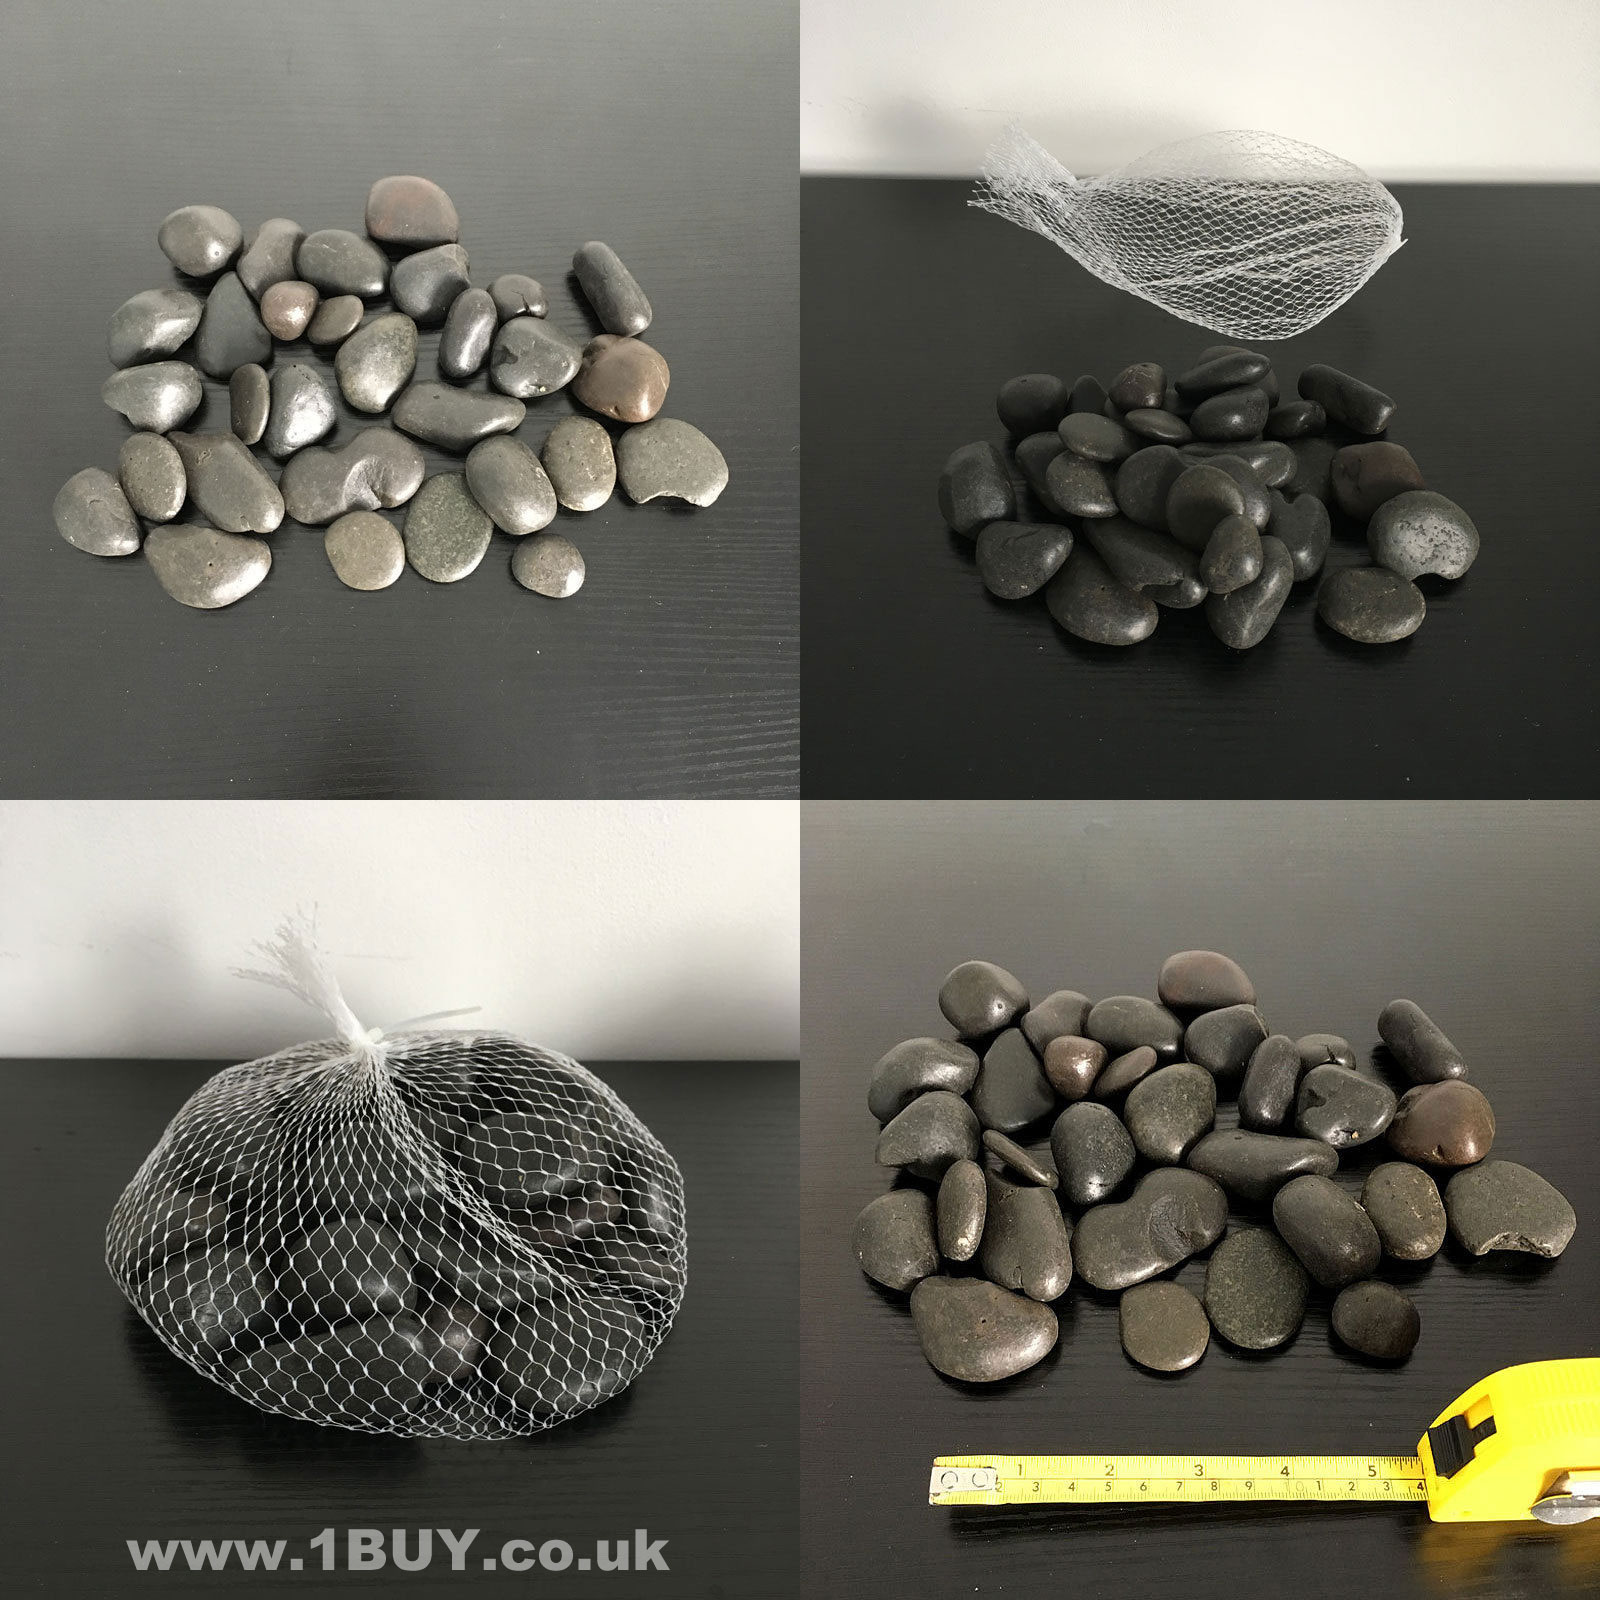 1kg Black Decorative Stones for Vases Natural | Craft Pebbles ... on submersible lights for vases, decorating ideas for vases, decorative vases and urns, water beads for vases, glass rocks for vases, pearl beads for vases, antique chinese vases, underwater lights for vases, gel beads for vases, ancient egyptian vases, floral lights for vases, black rocks for vases, sand for vases, pebbles for vases, extra large floor vases, lighting for vases, led lights for vases, pink marbles for vases, trees for vases, lighted branches for vases,